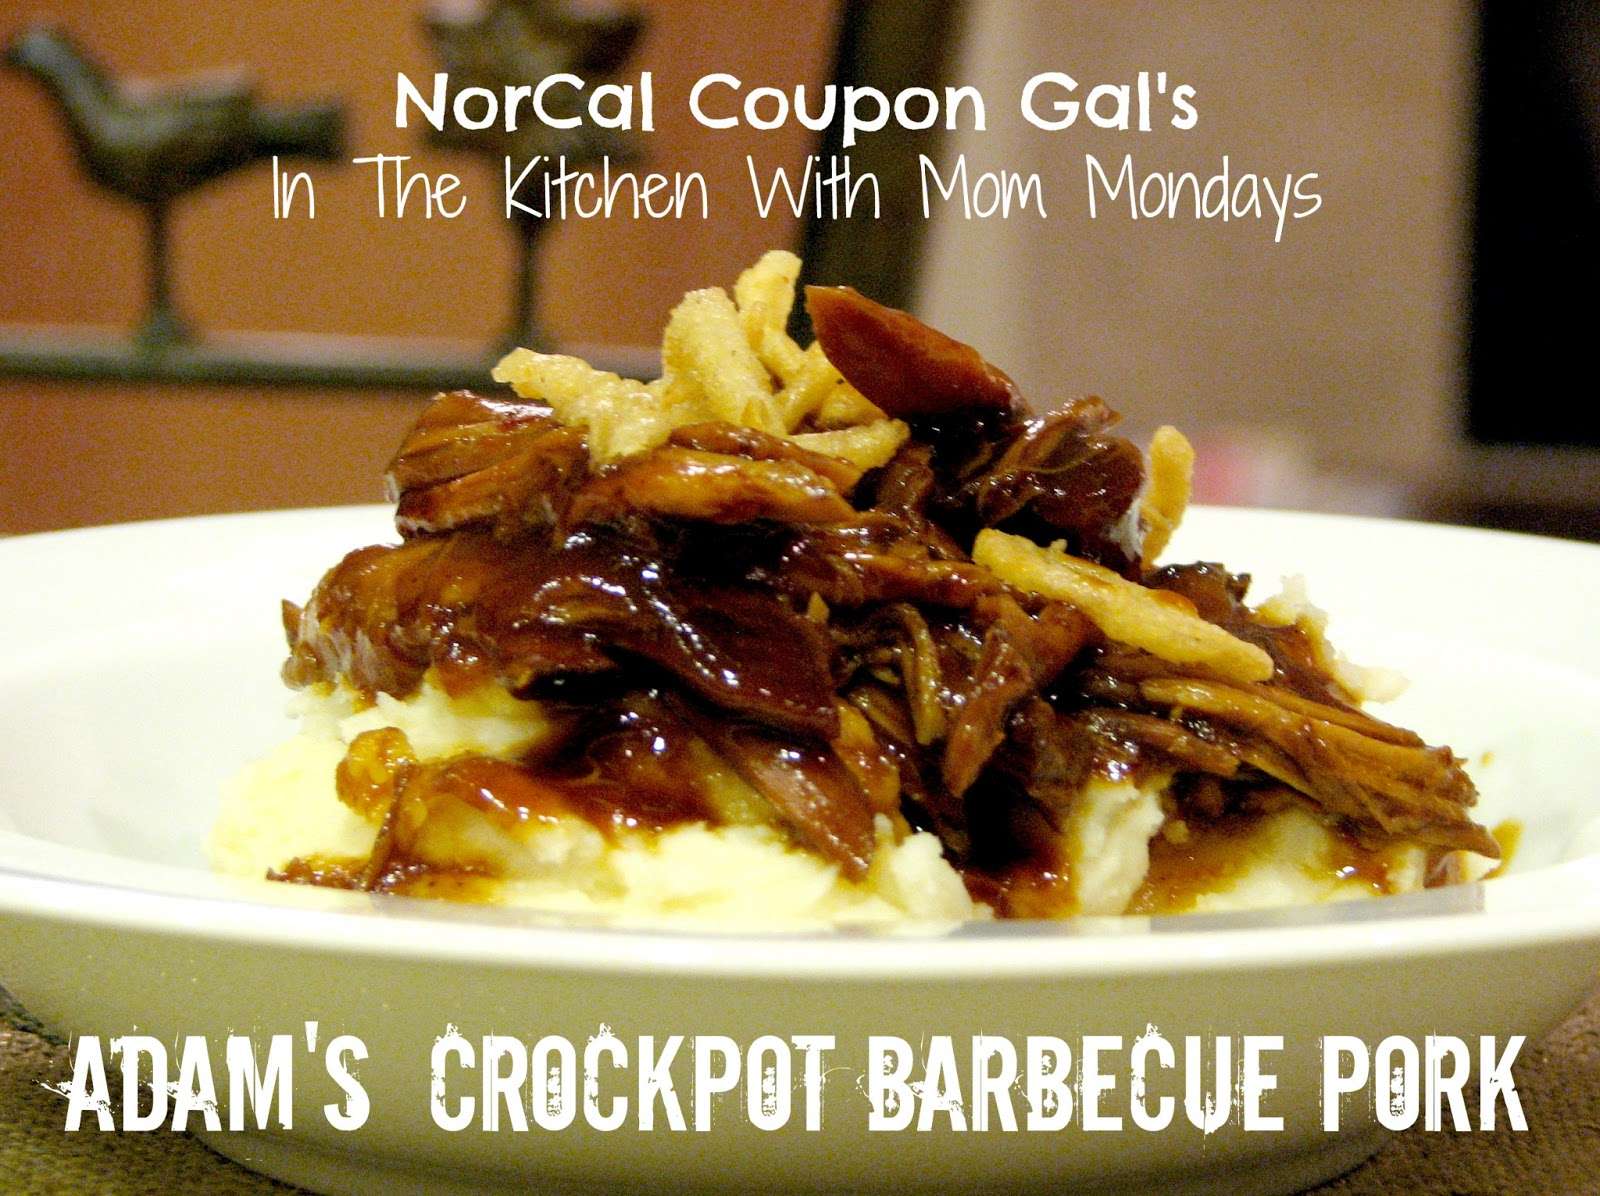 In The Kitchen With Mom Mondays: Adam's crockpot barbecue pork